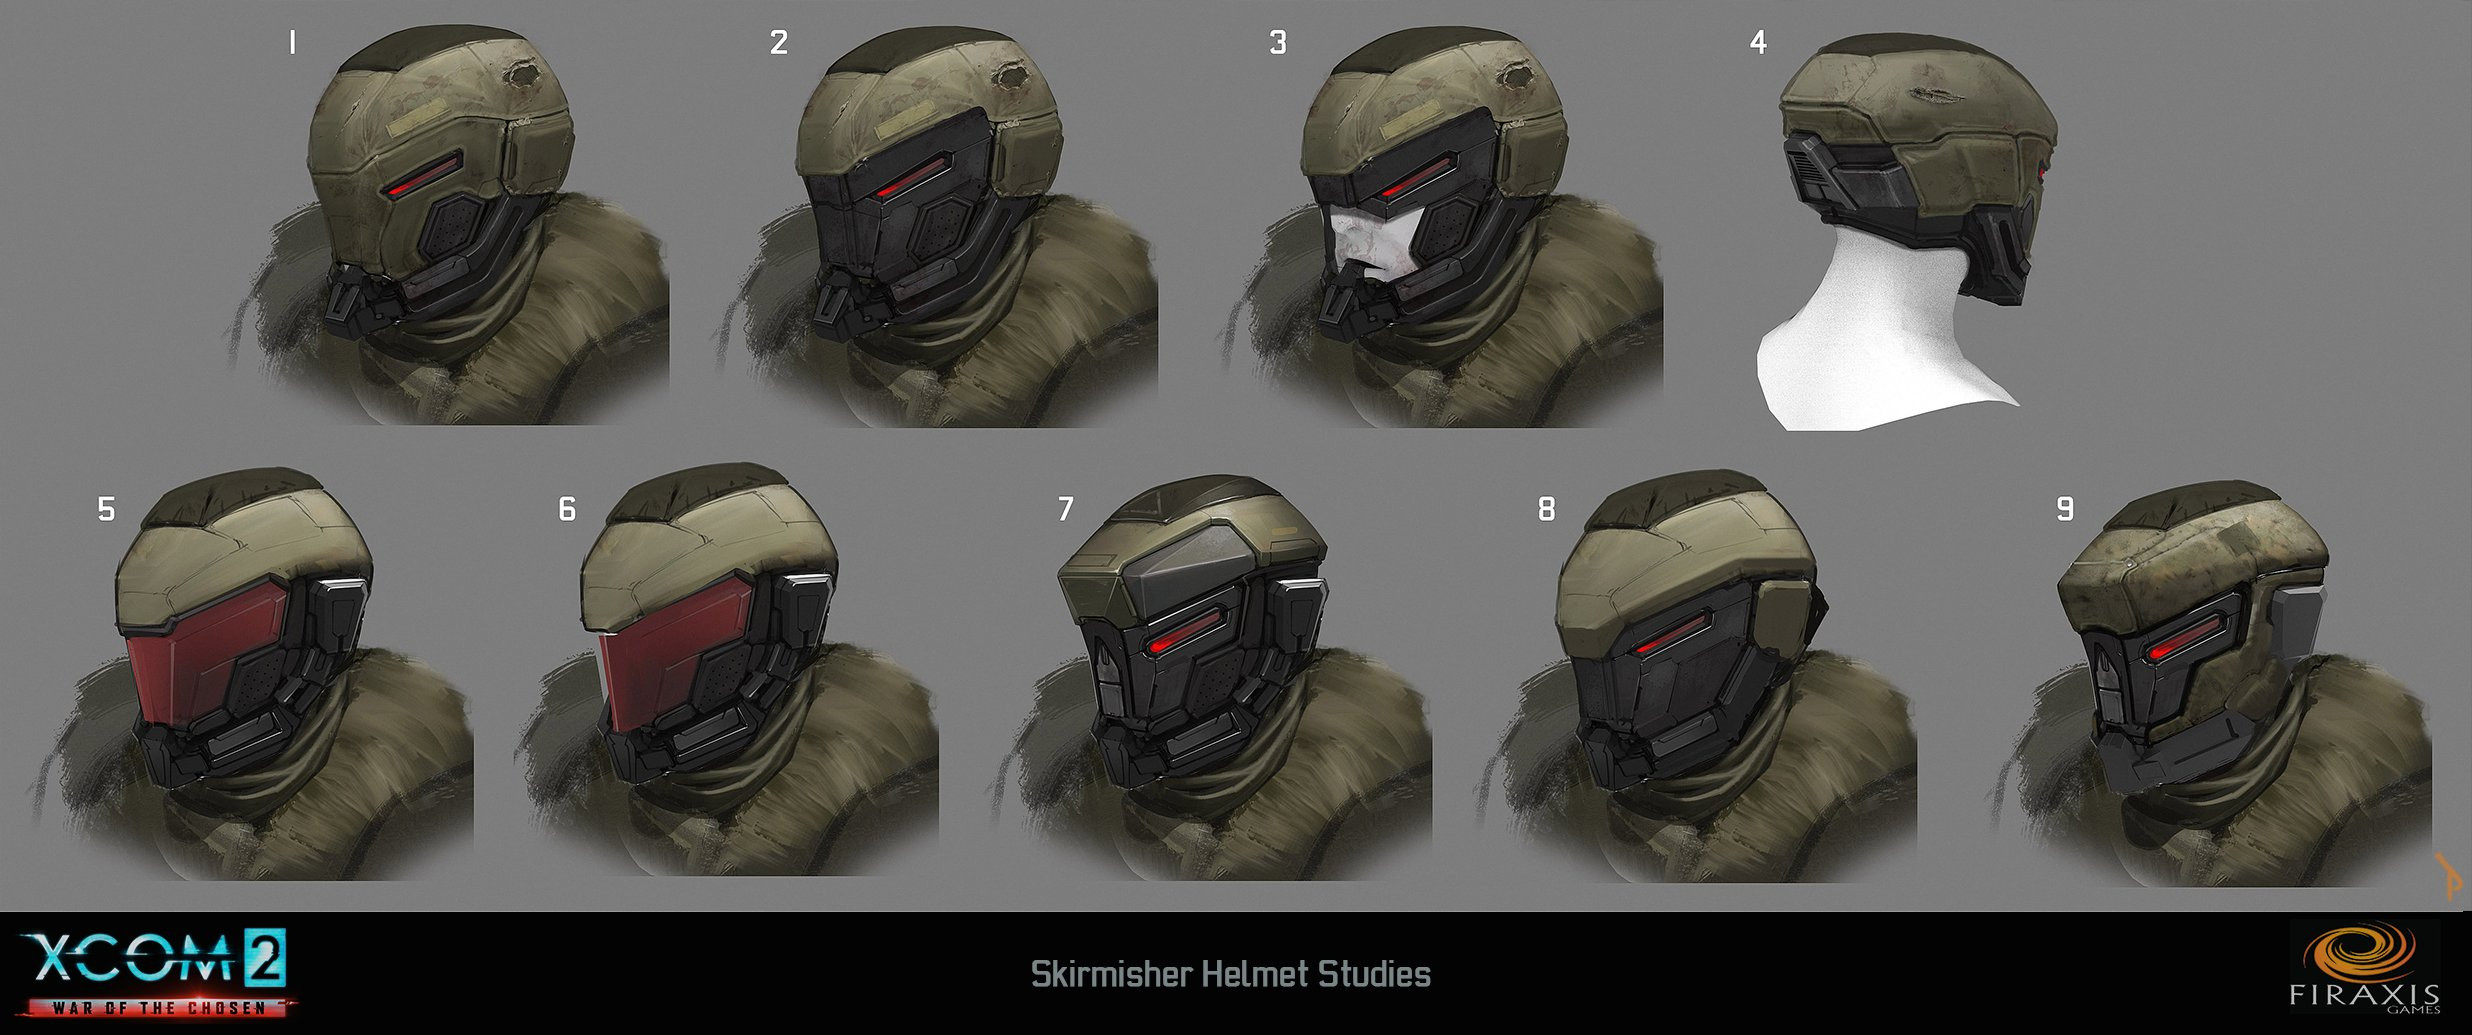 Skirmisher helmet variations